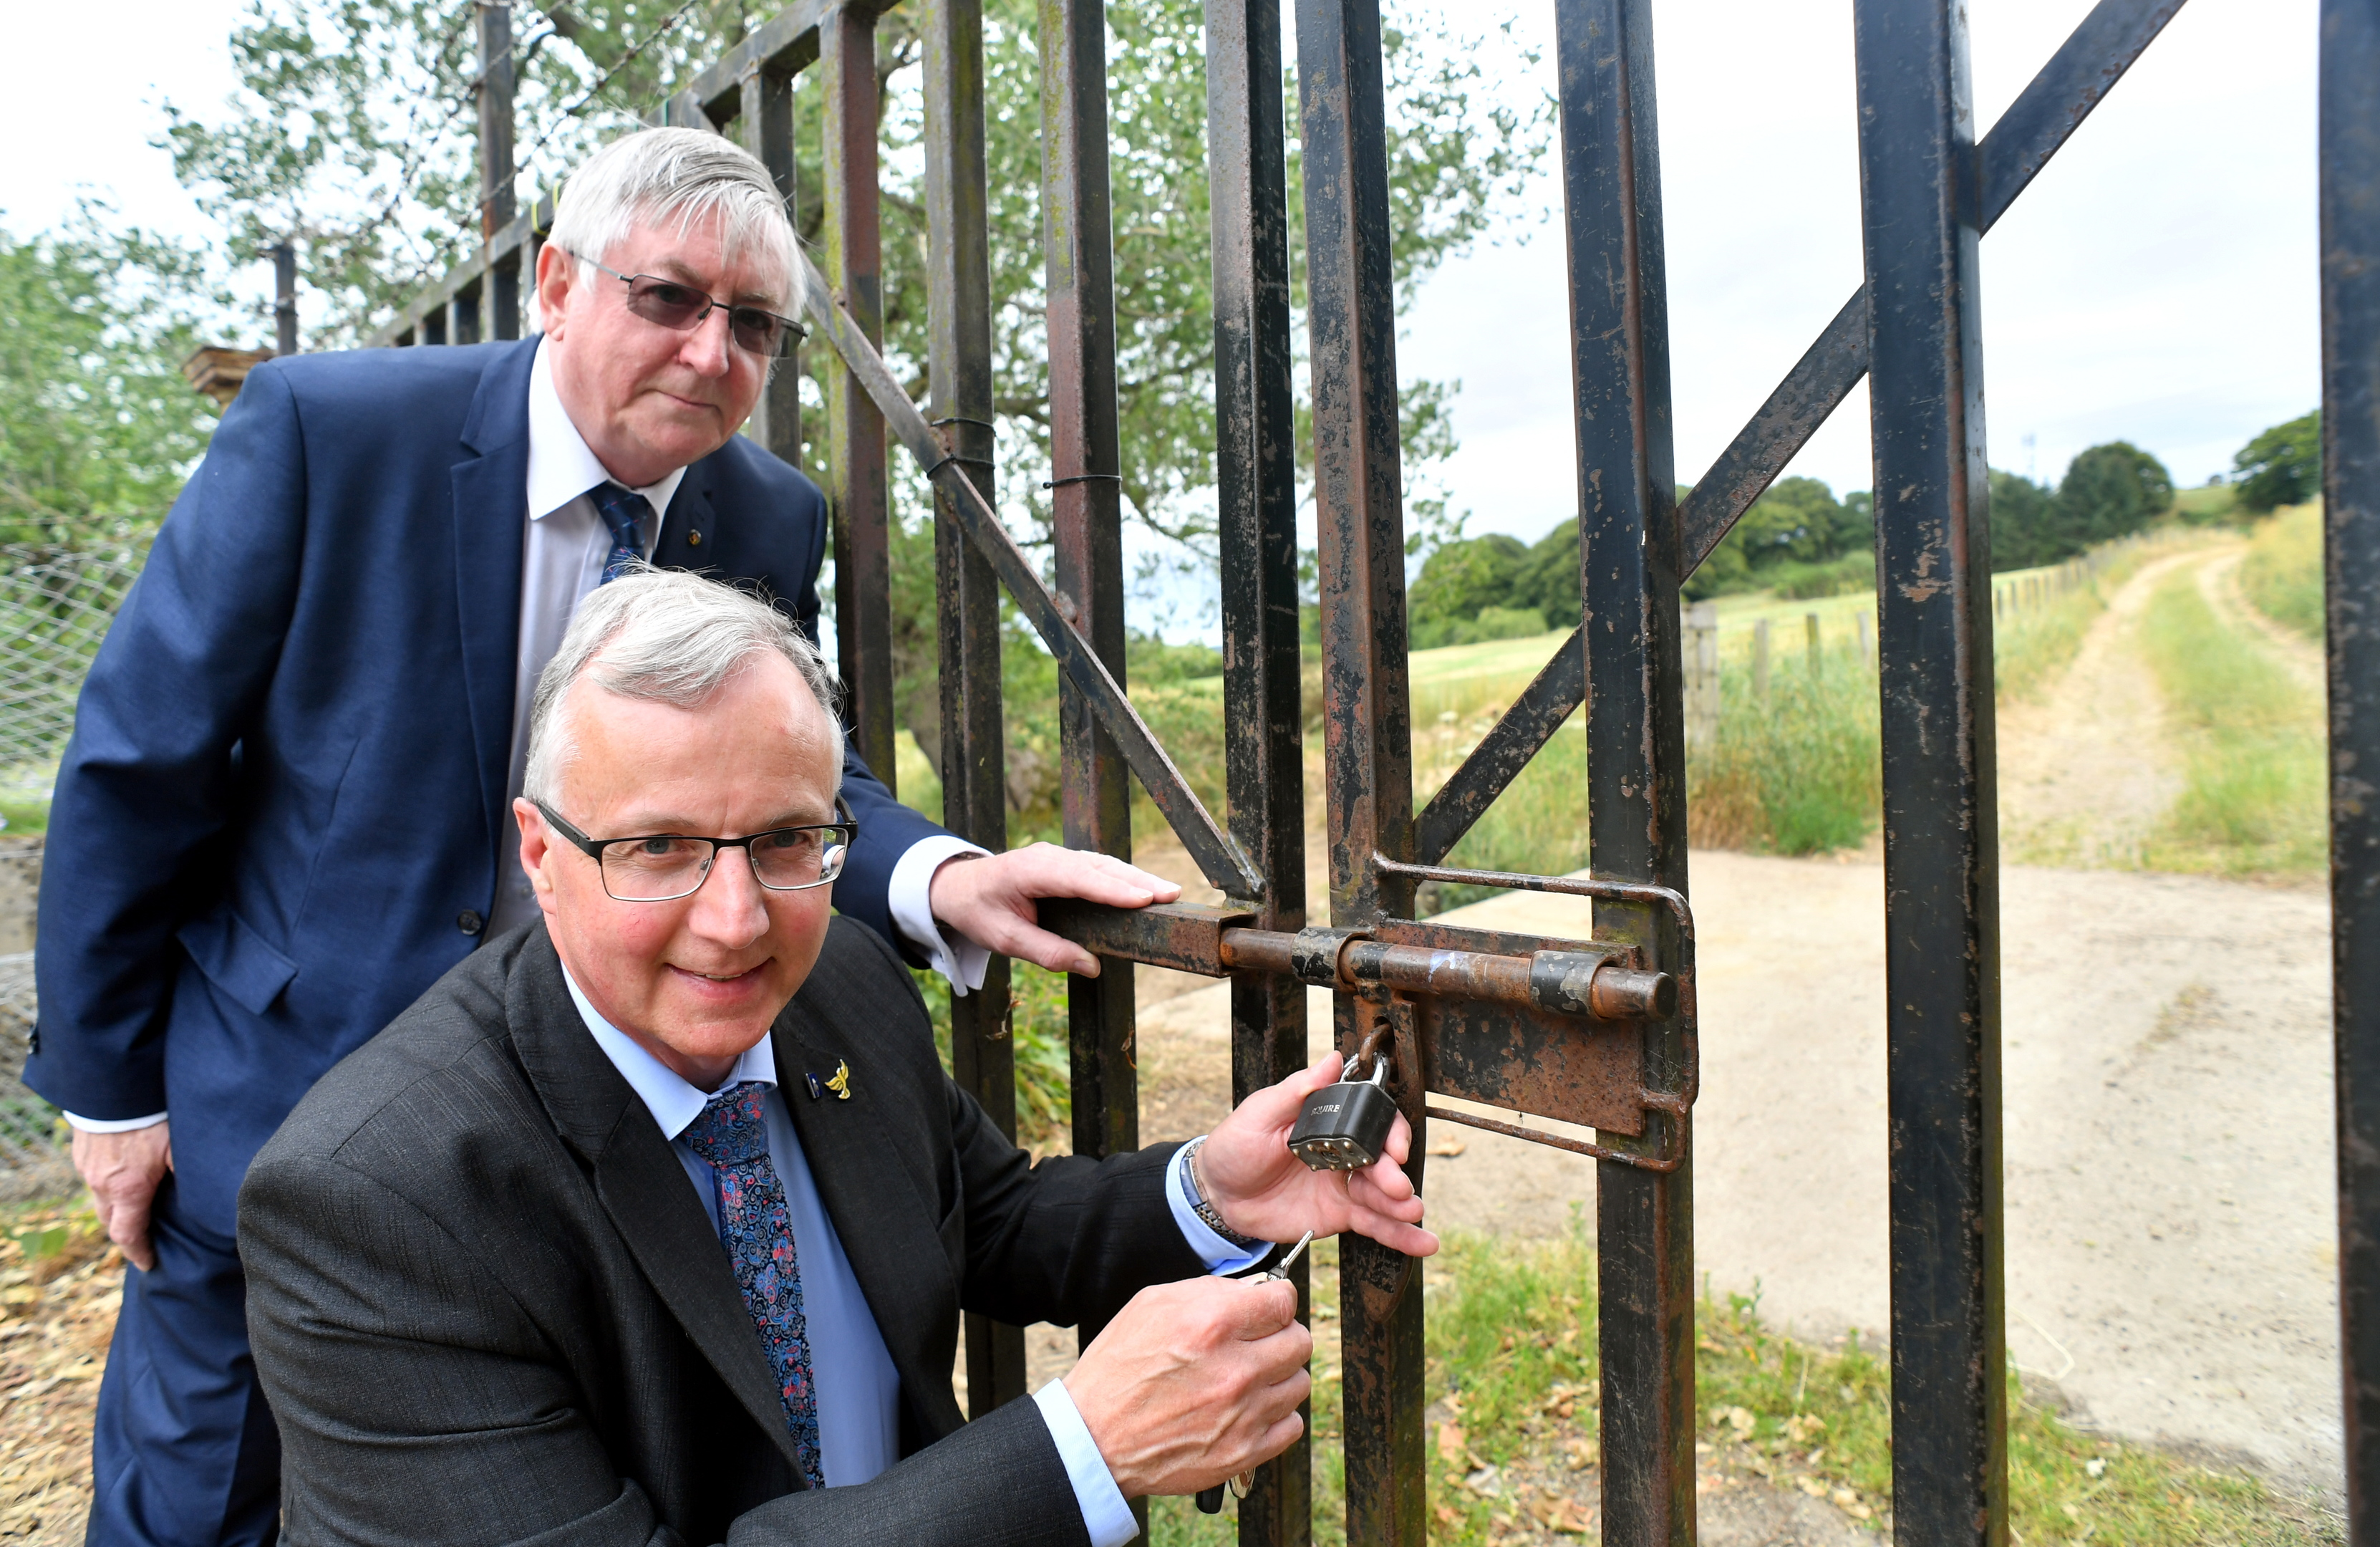 Councillors Dominic Lonchay and Fergus Hood at the entrance gate to the walk over Tuach Hill which will be opened again soon after an asbestos problem was resolved.